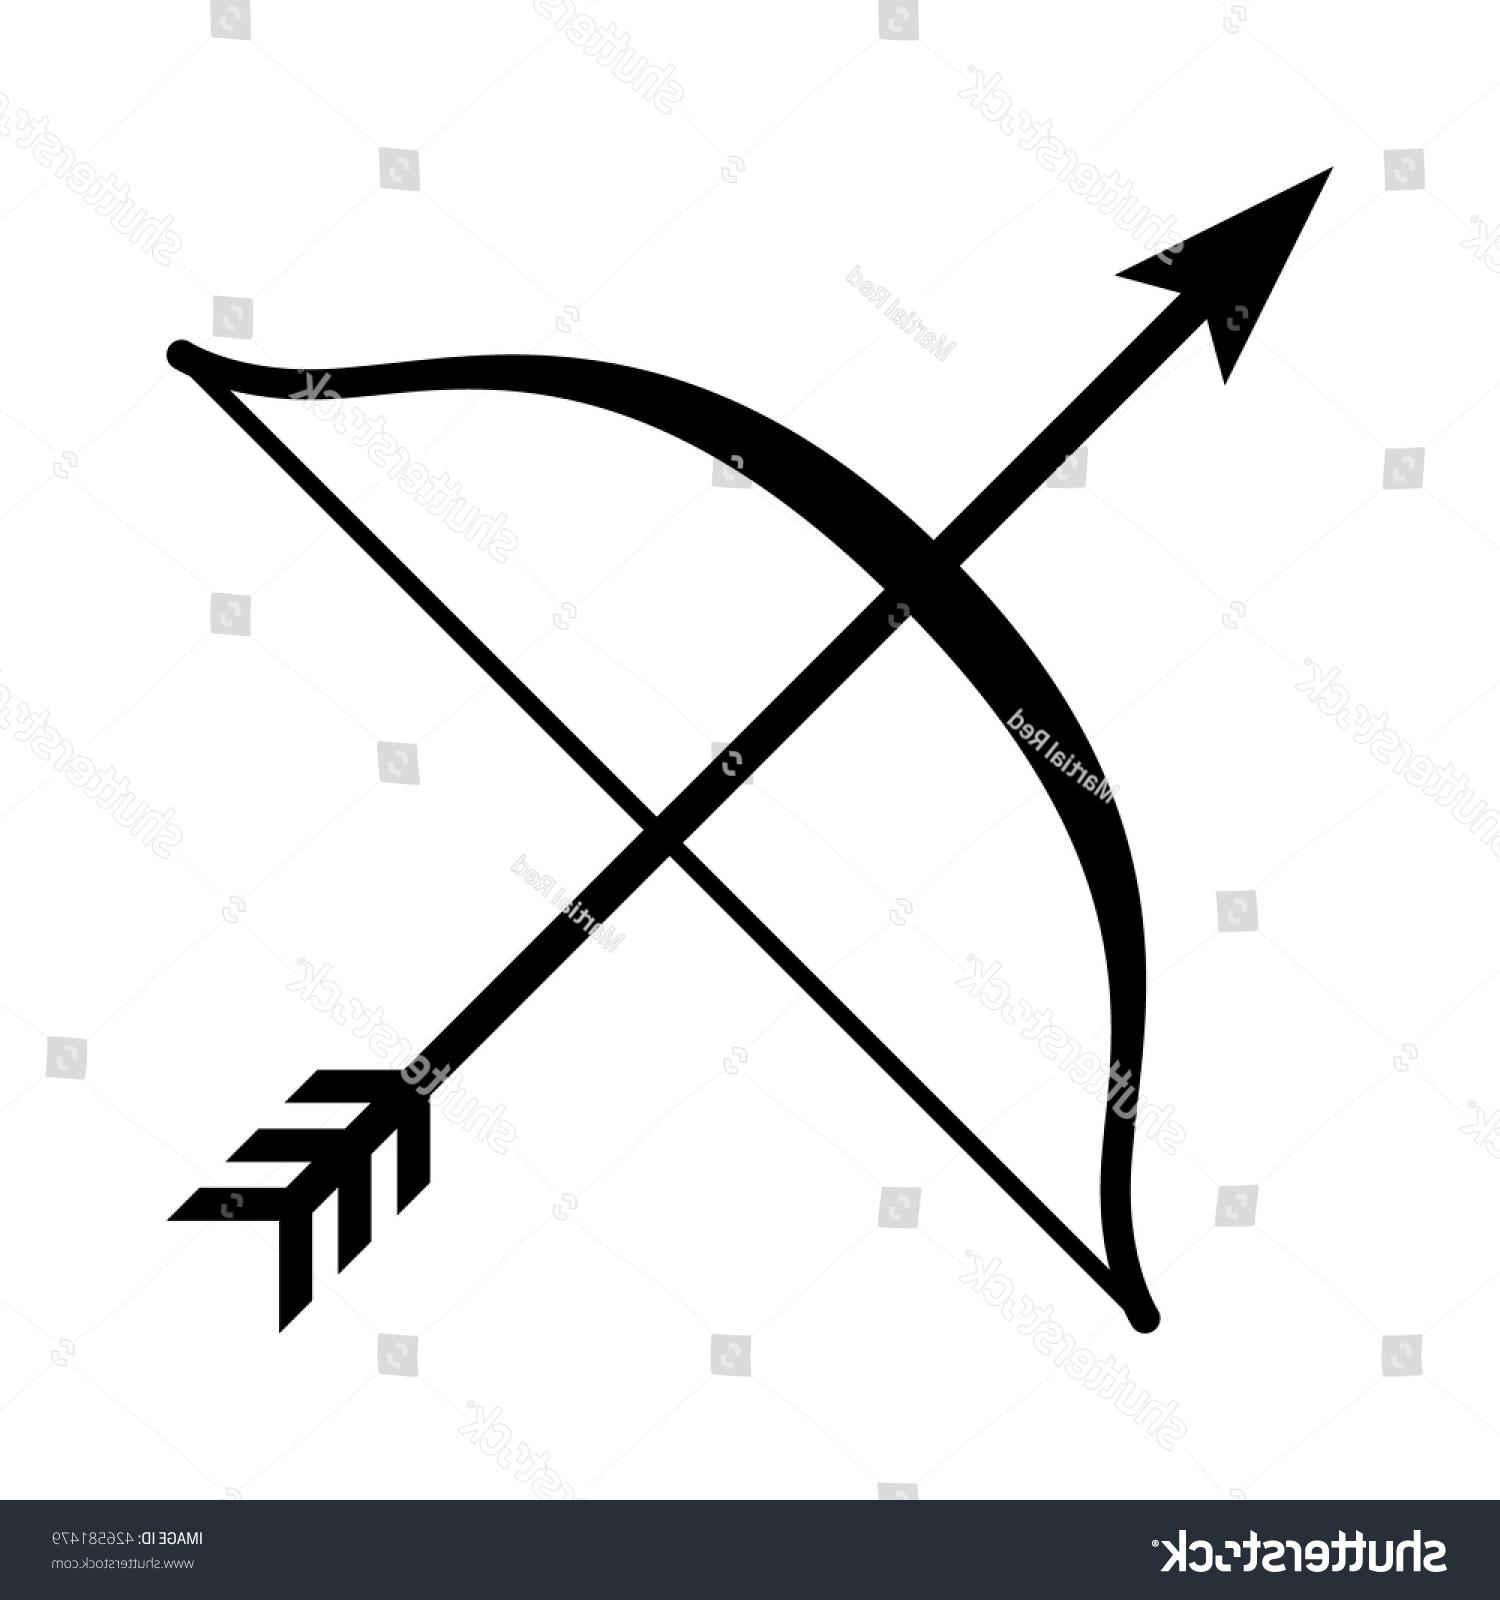 1500x1600 Best Stock Vector Long Bow Arrow Archery Line Art Icon For Games